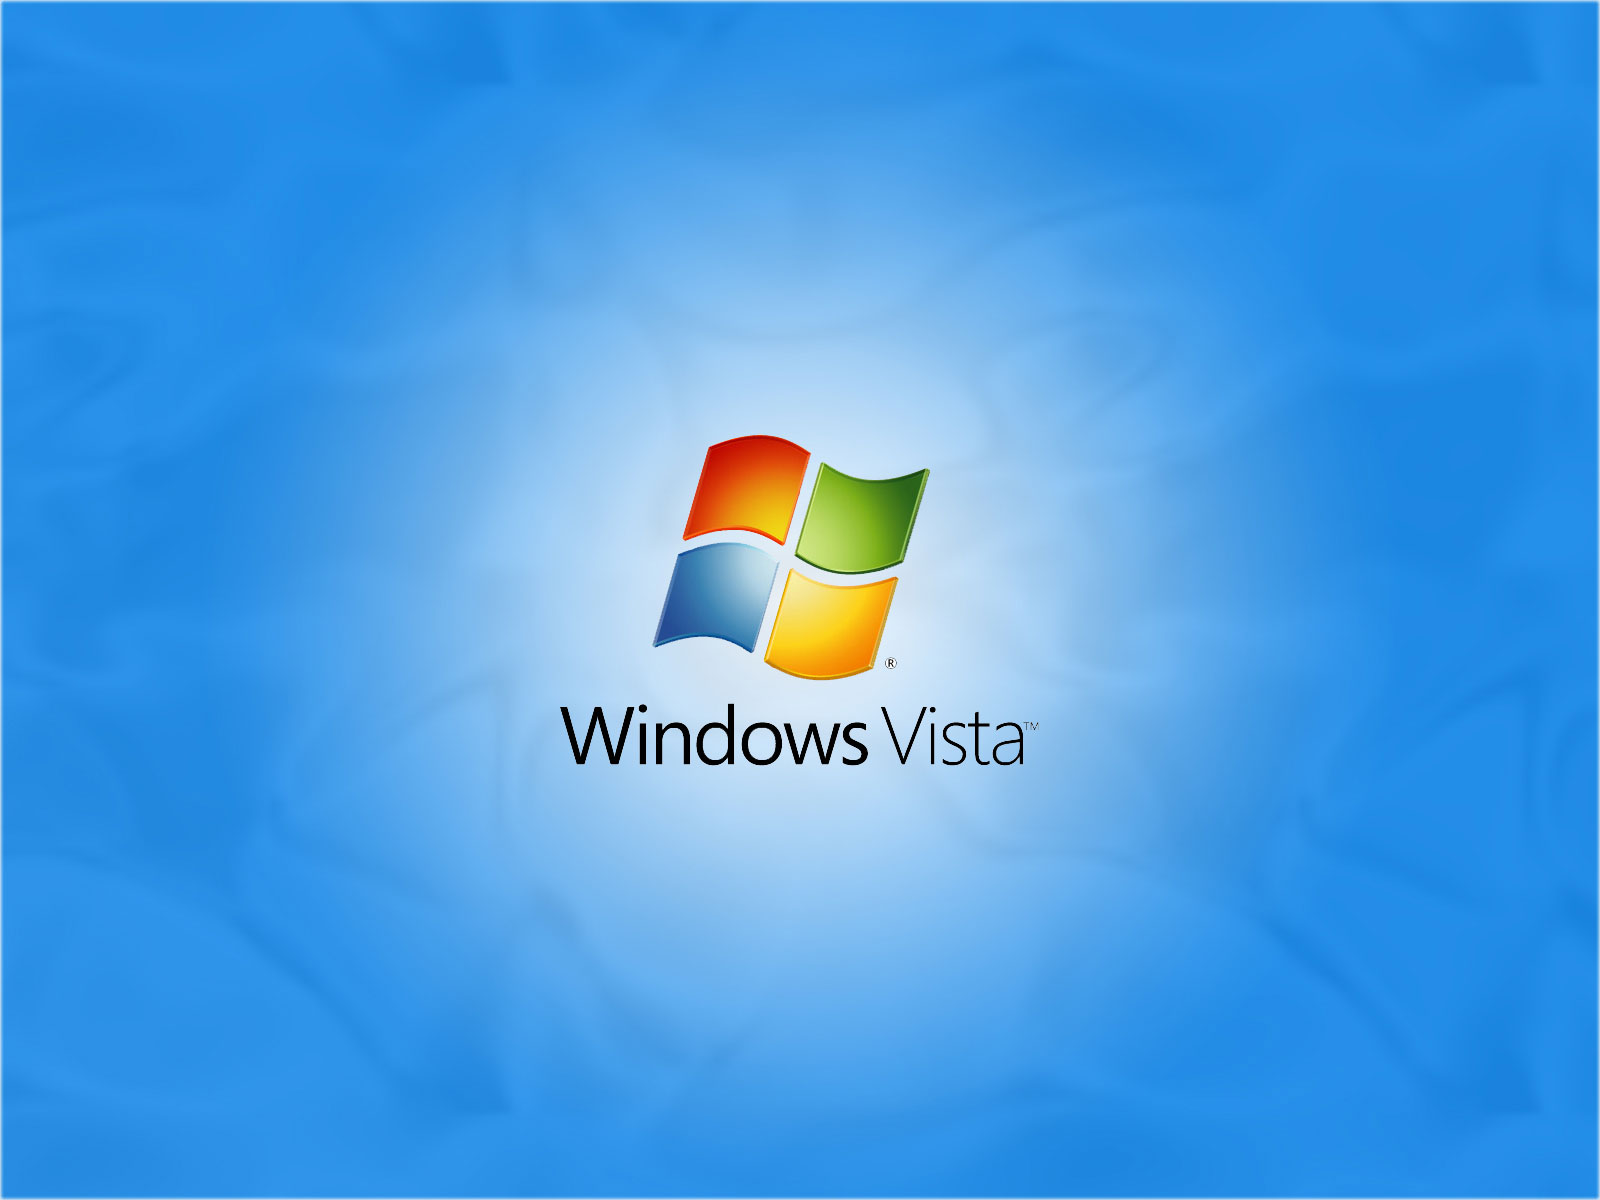 Windows vista wallpaper set 12 awesome wallpapers for Windows windows